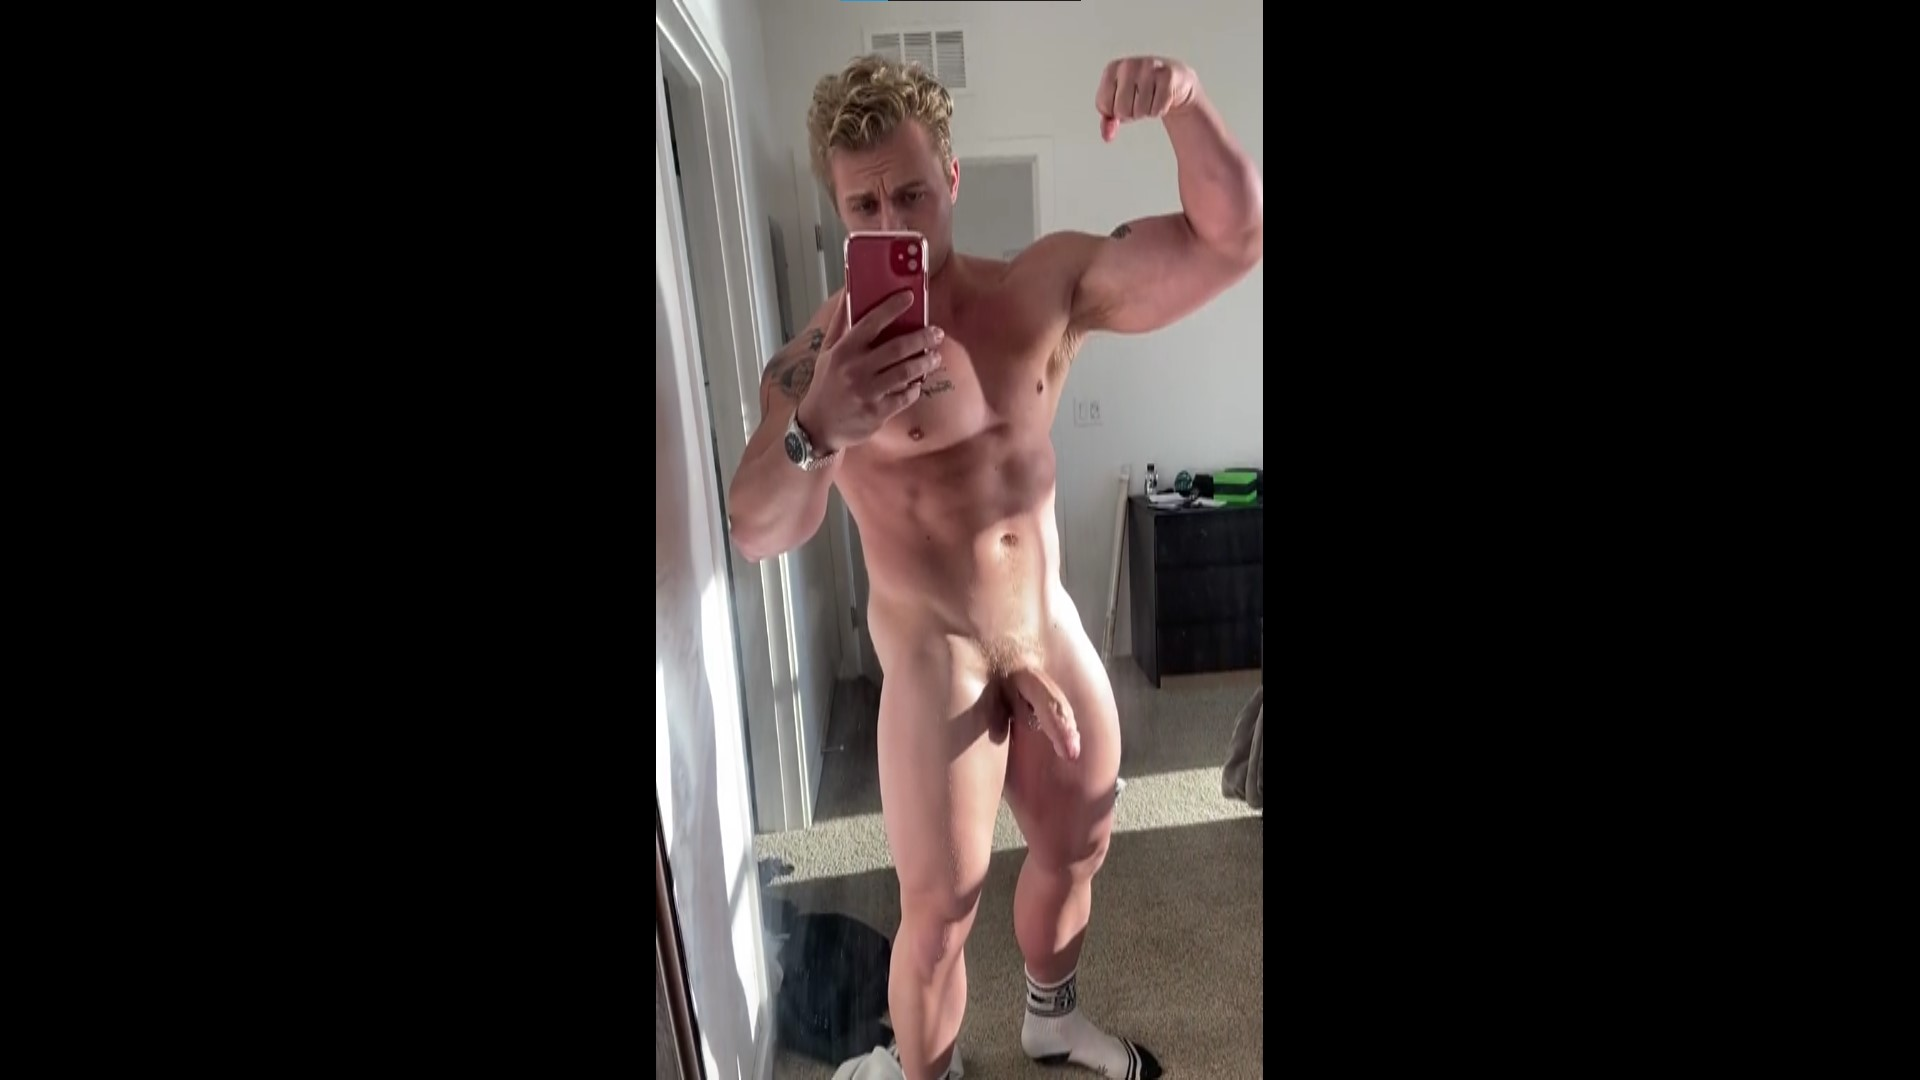 Showing off my body and hard cock - icemanjb